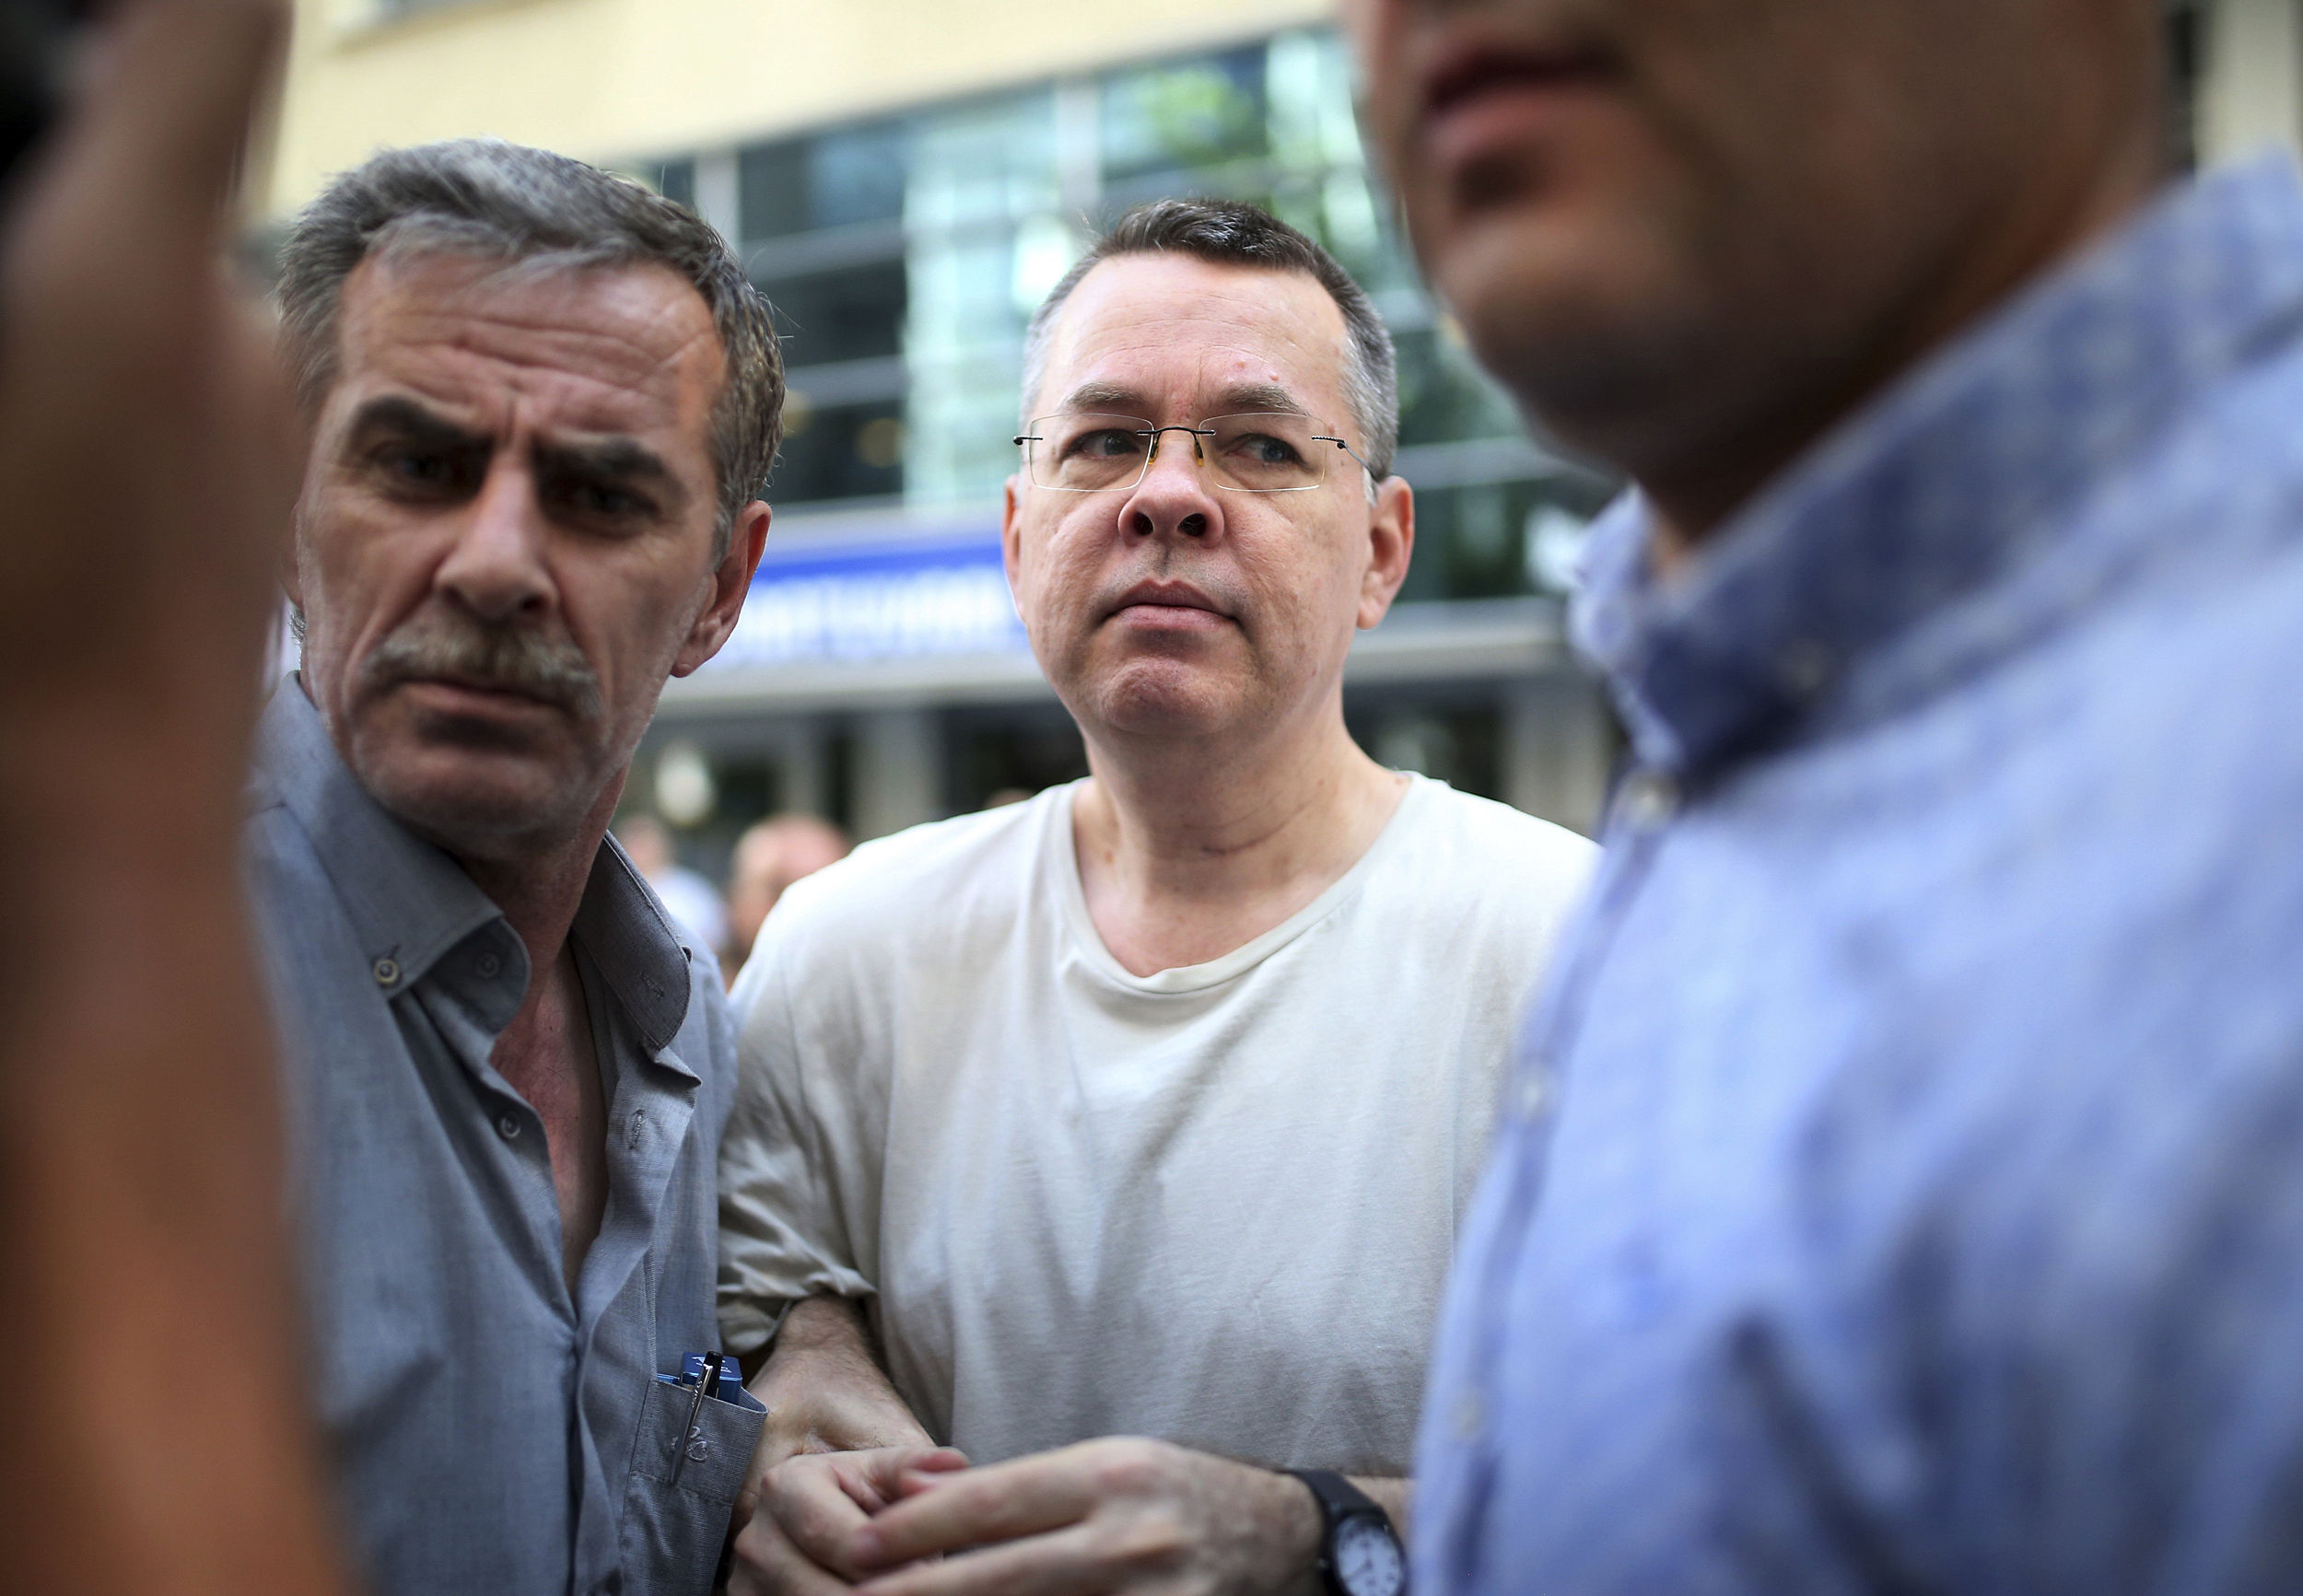 Secret deal with Turkey paves way for American pastor's release